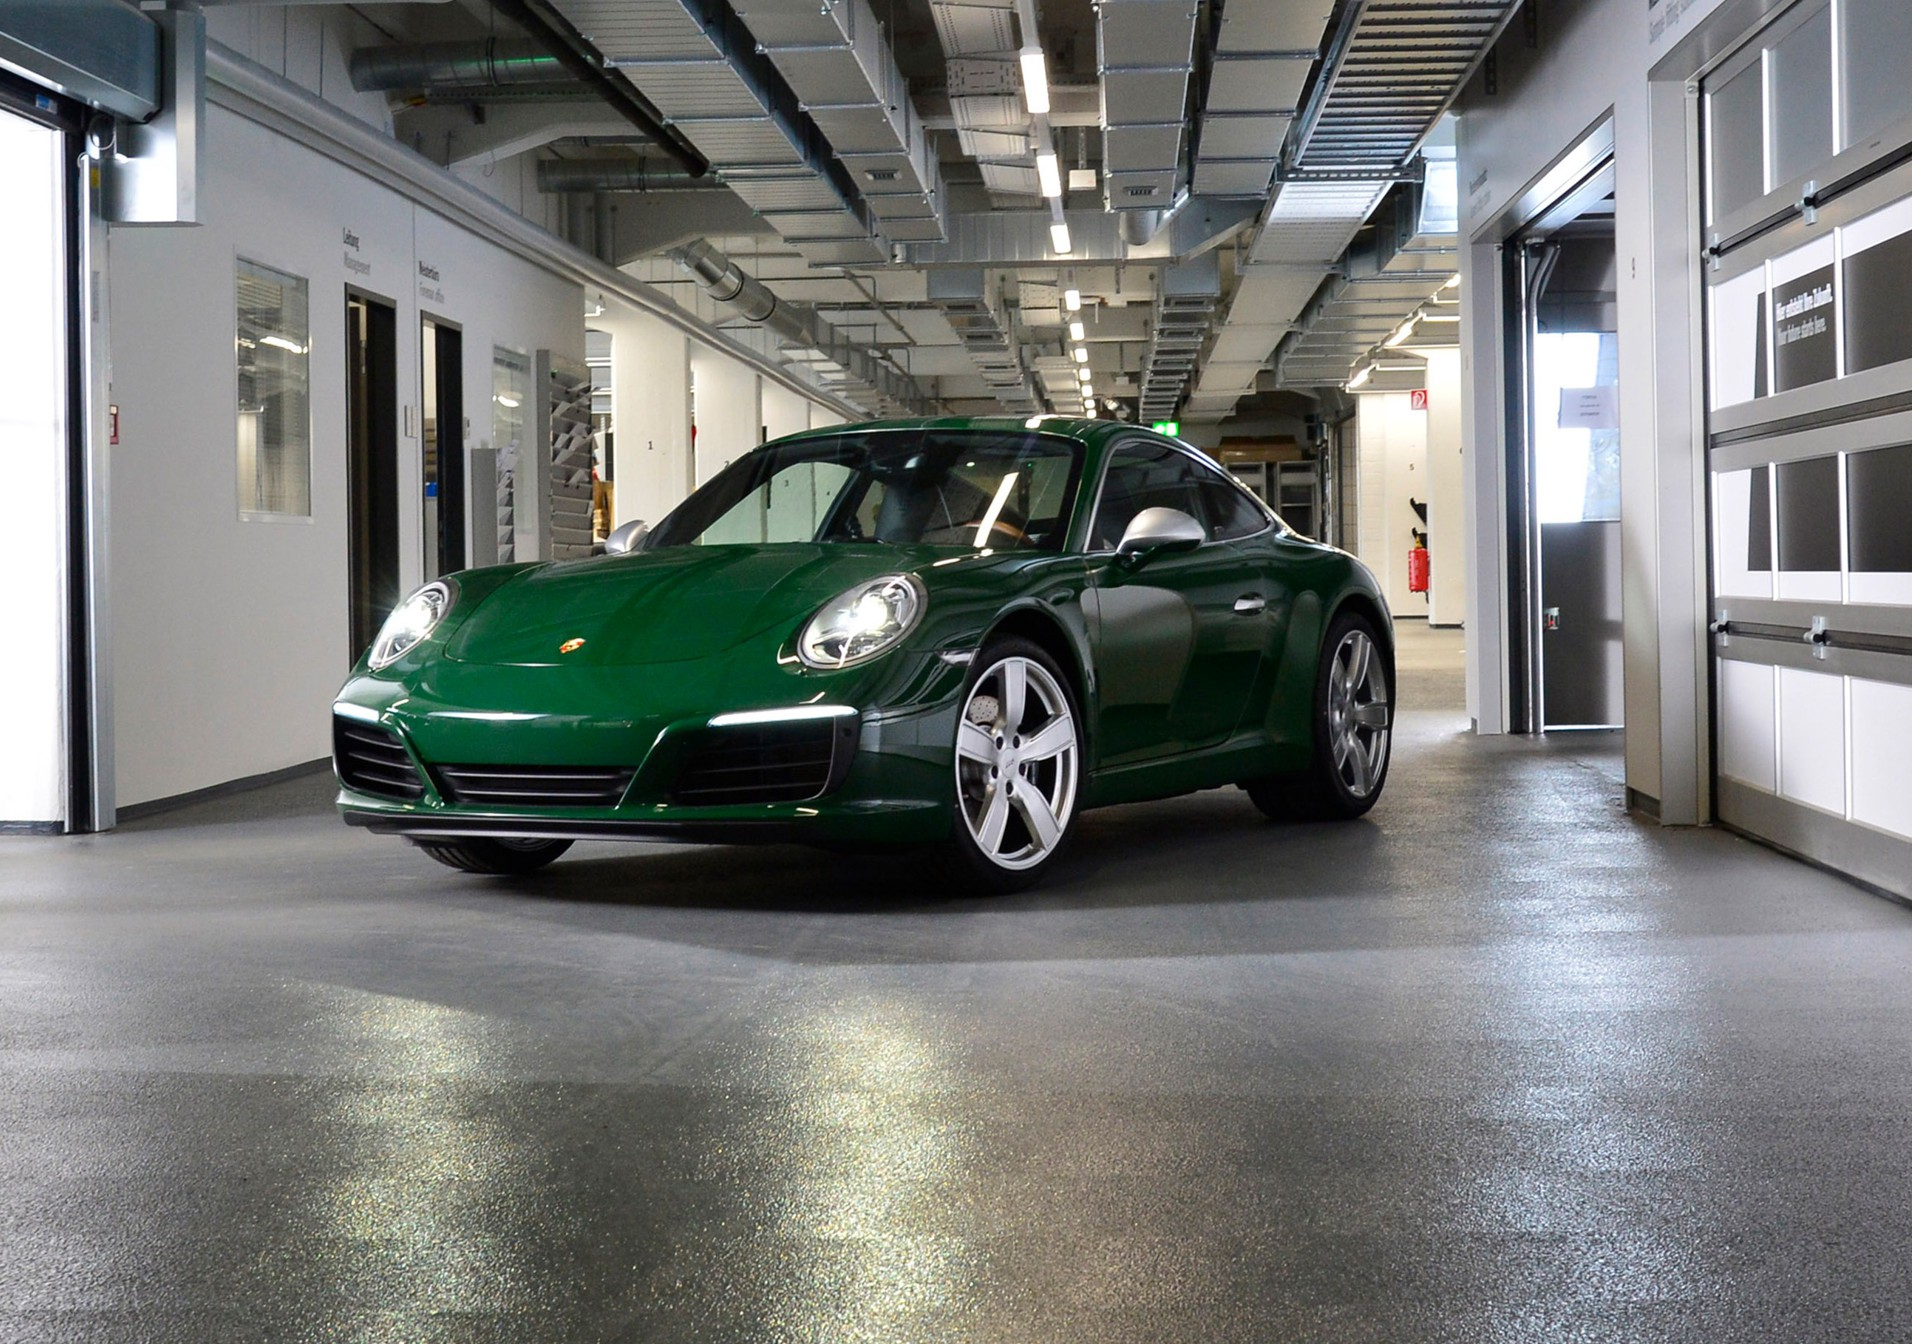 One Million Dreams: This Is the 1,000,000th Porsche 911